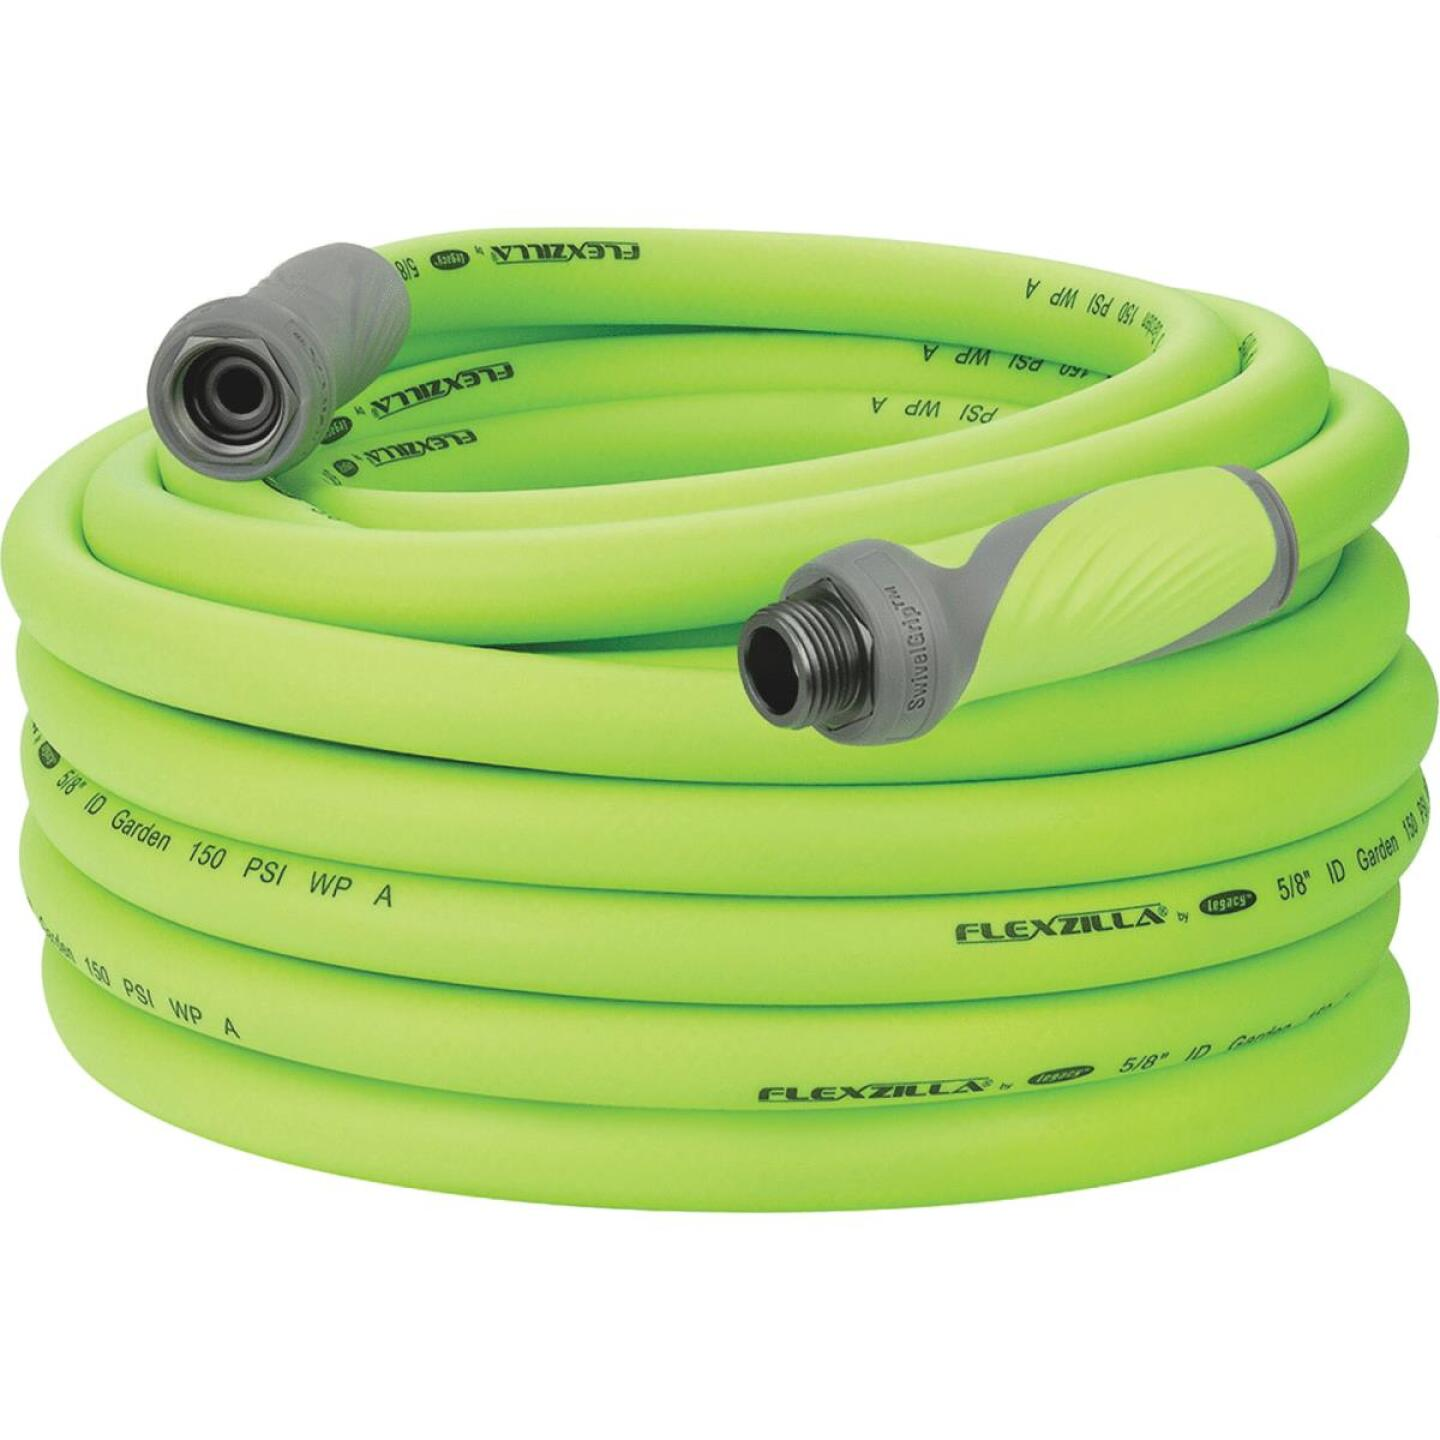 Flexzilla 5/8 In. Dia. x 75 Ft. L. Drinking Water Safe Garden Hose with SwivelGrip Connections Image 1